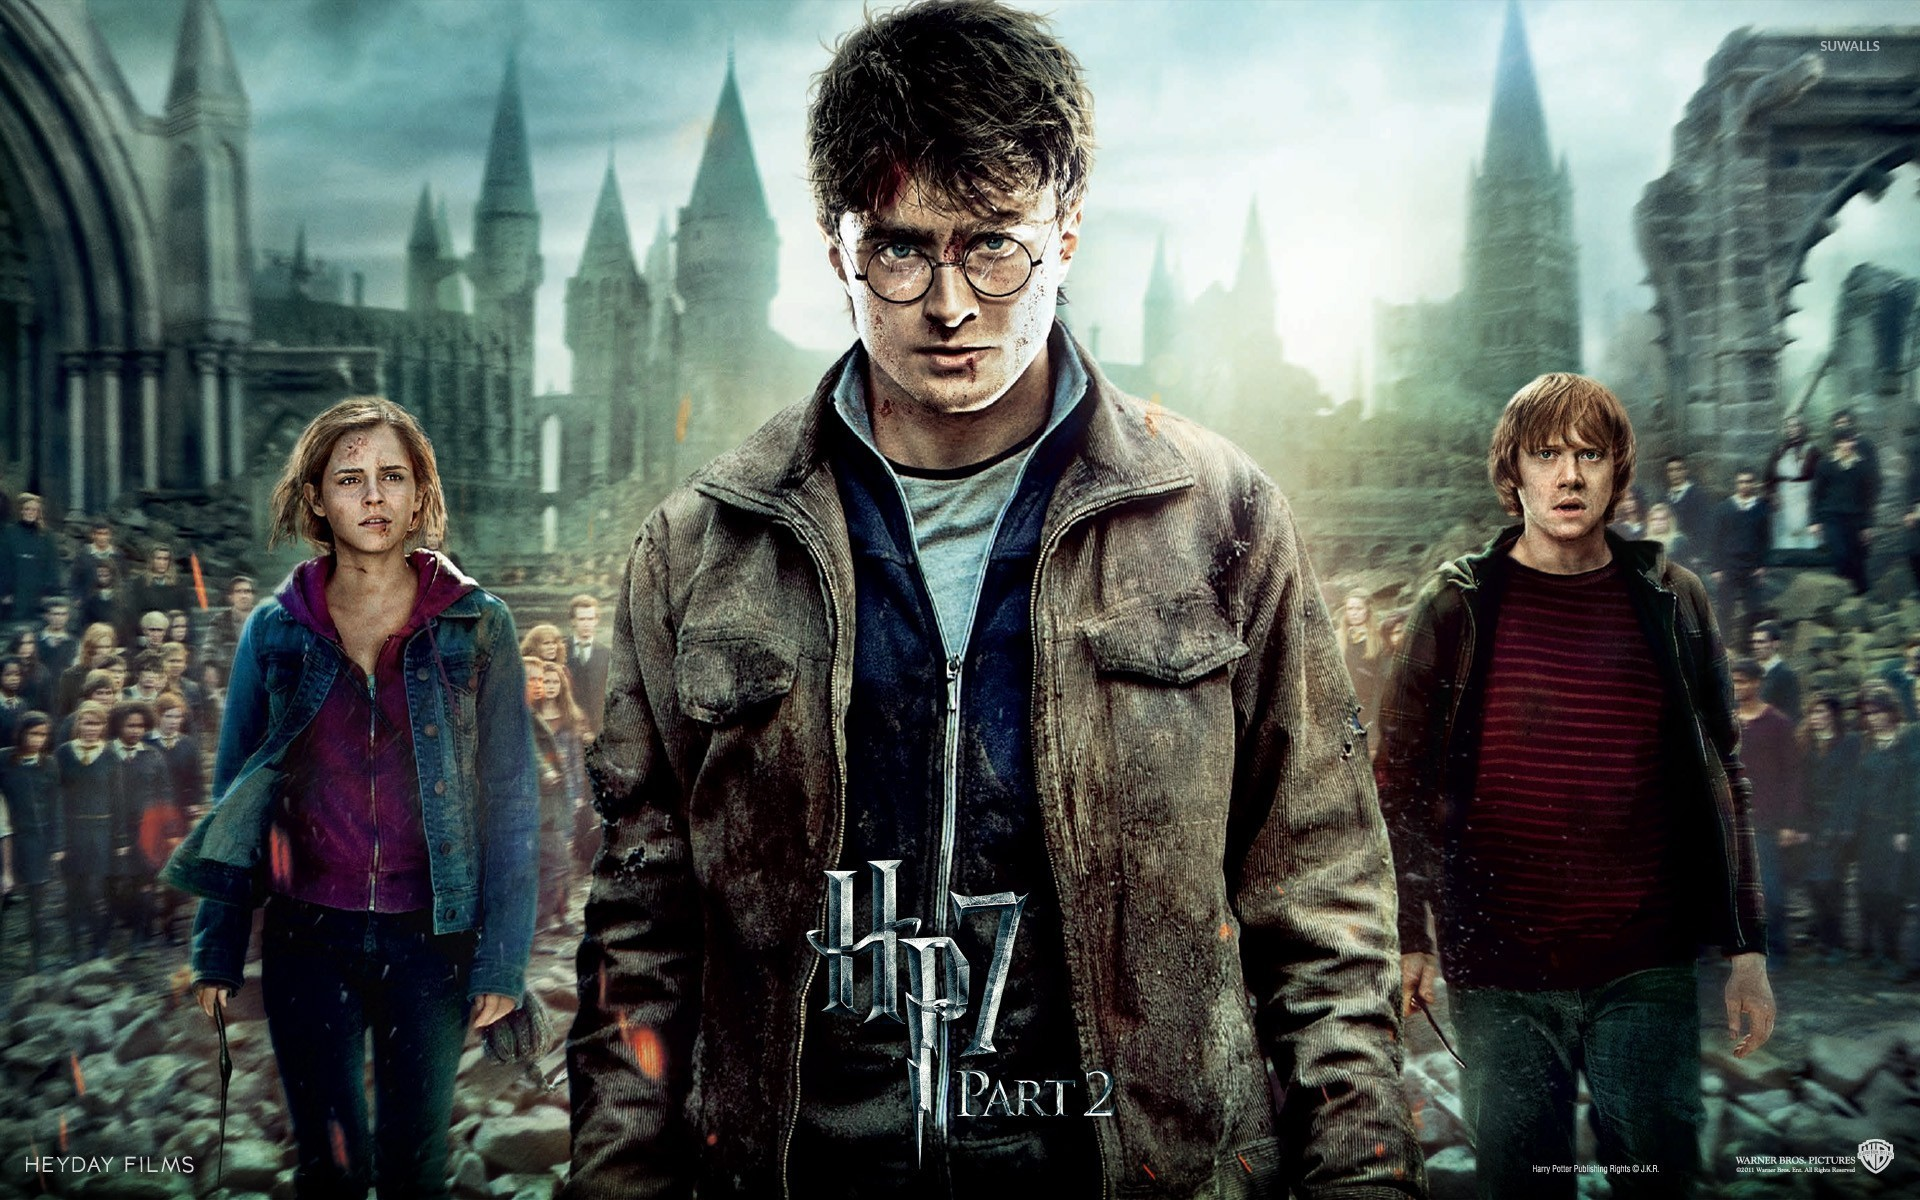 Harry Potter And The Deathly Hallows Part 2 Wallpaper Movie